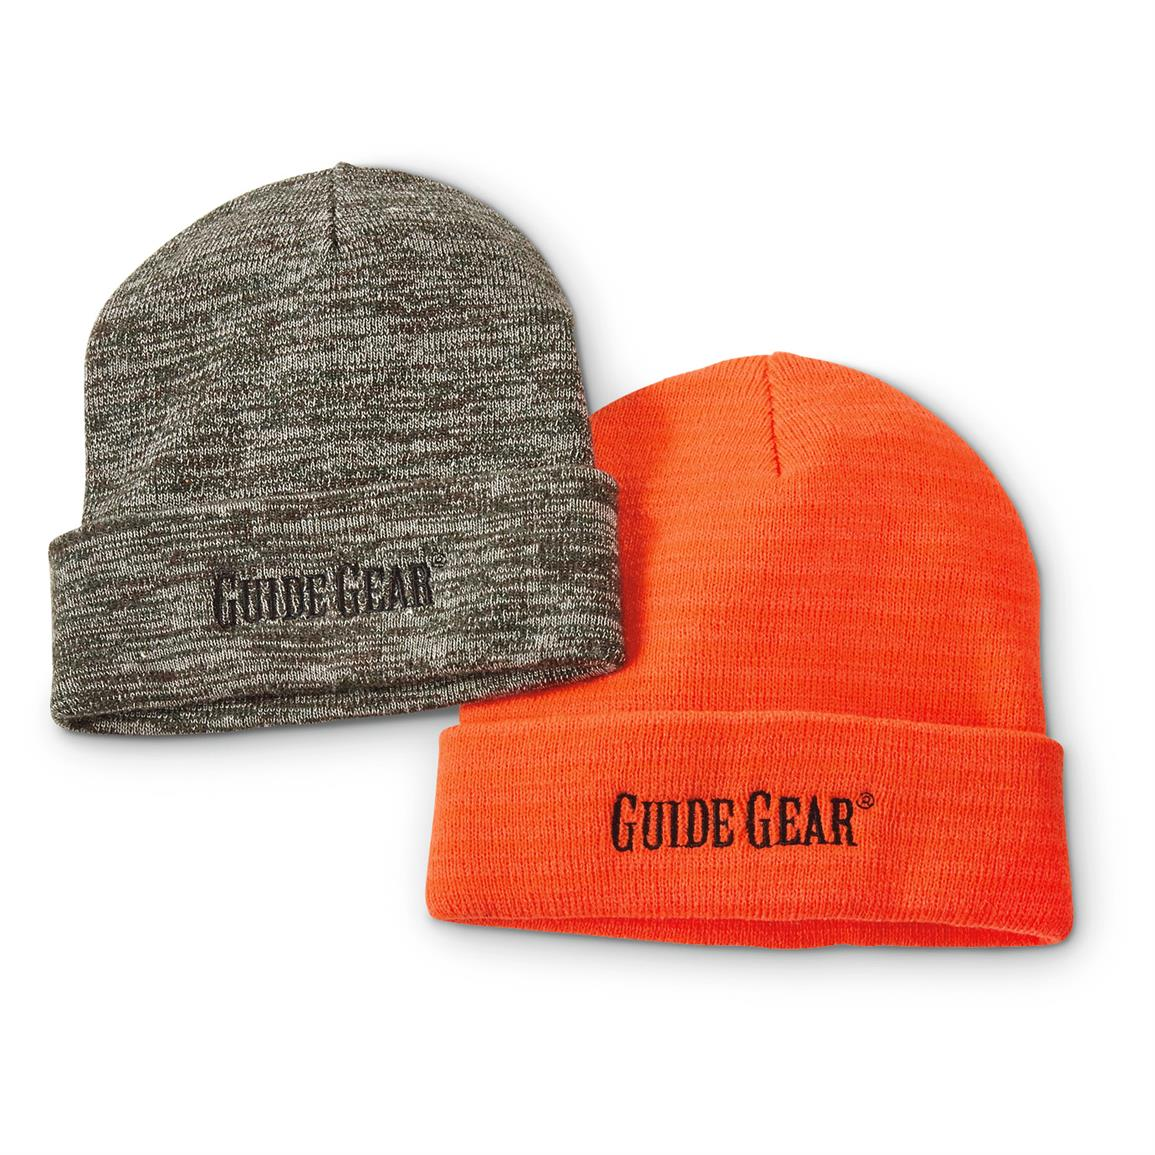 Guide Gear Knit Beanies, 2 Pack